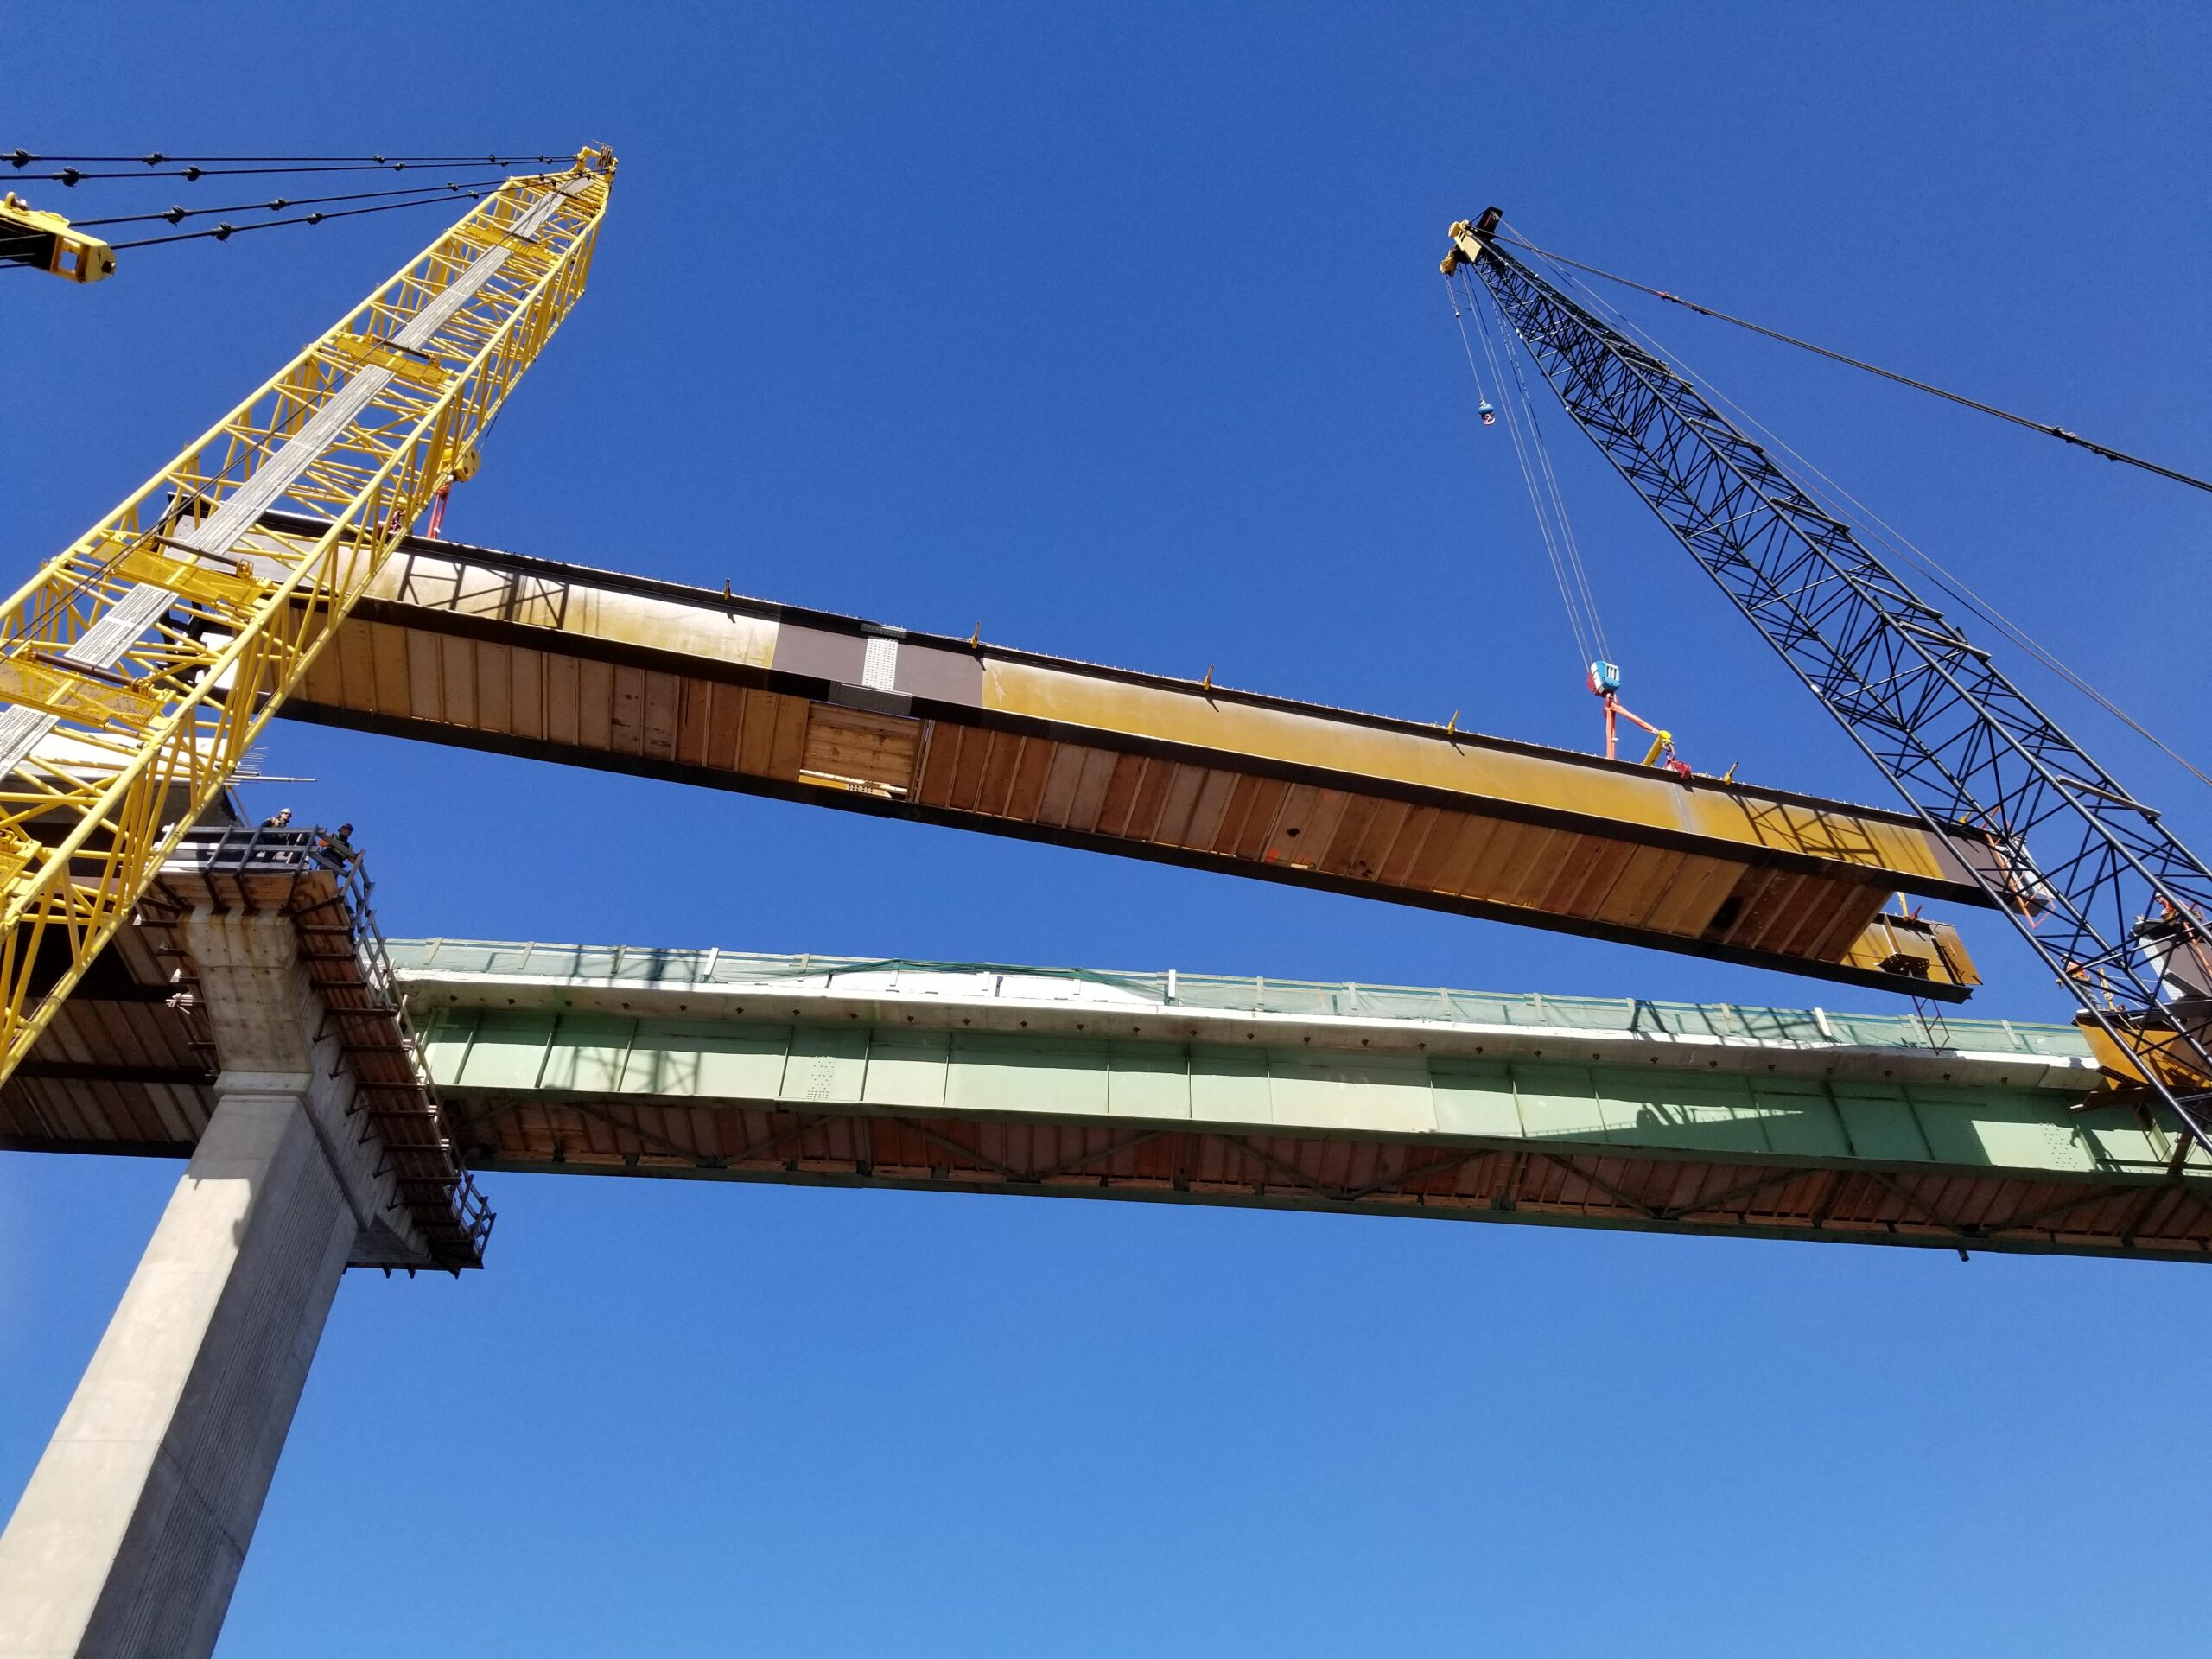 Approach girder being lowered into place